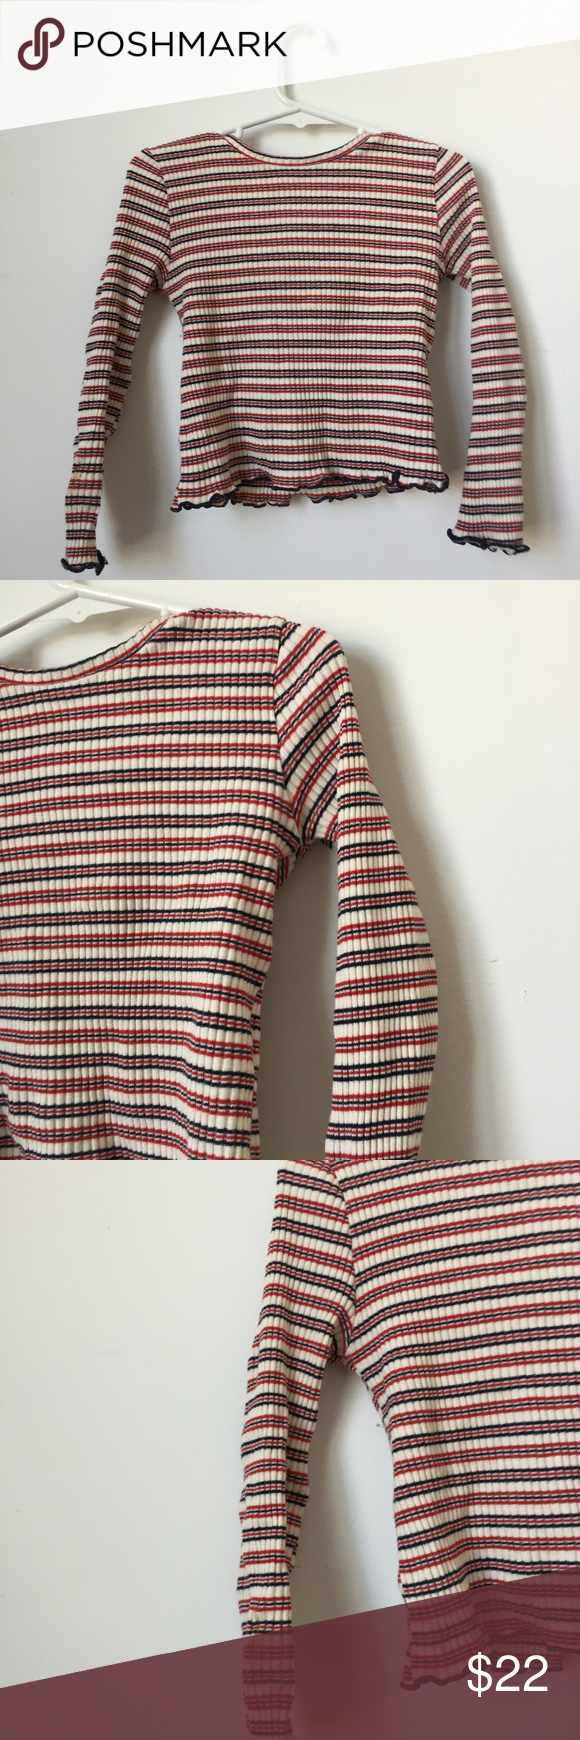 Zara Striped Top for Girls Zara Kids Collection. Red, White, Navy Blue Striped T... ,  #Blue #COLLECTION #Girls #KIDS #Navy #RED #STRIPED #top #White #ZARA #zarakidsred